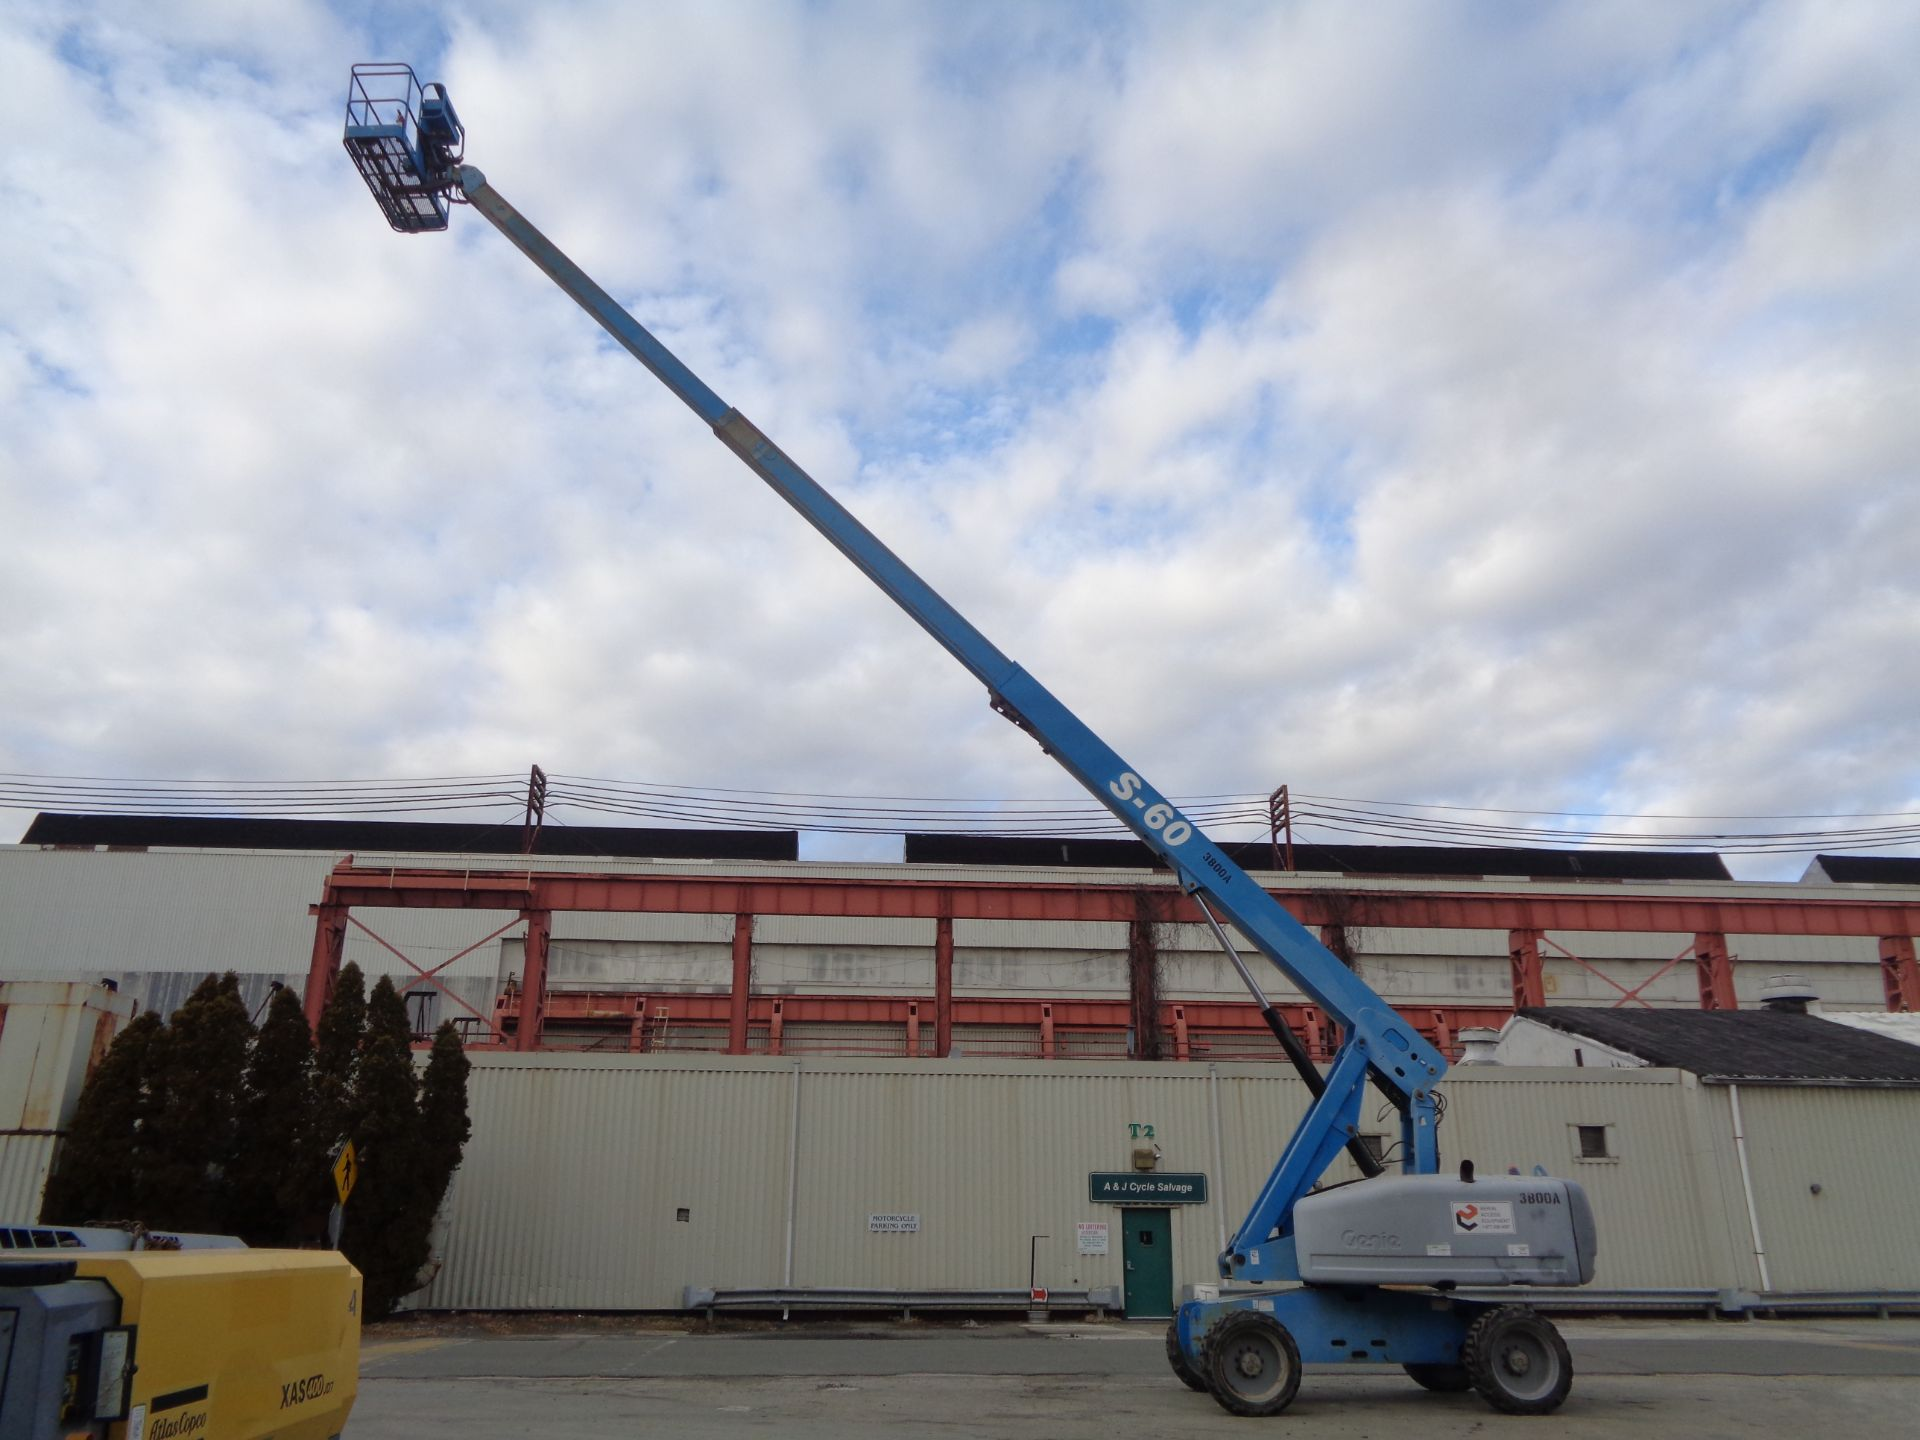 Lot 39 - 2006 Genie S60 60FT Boom Lift